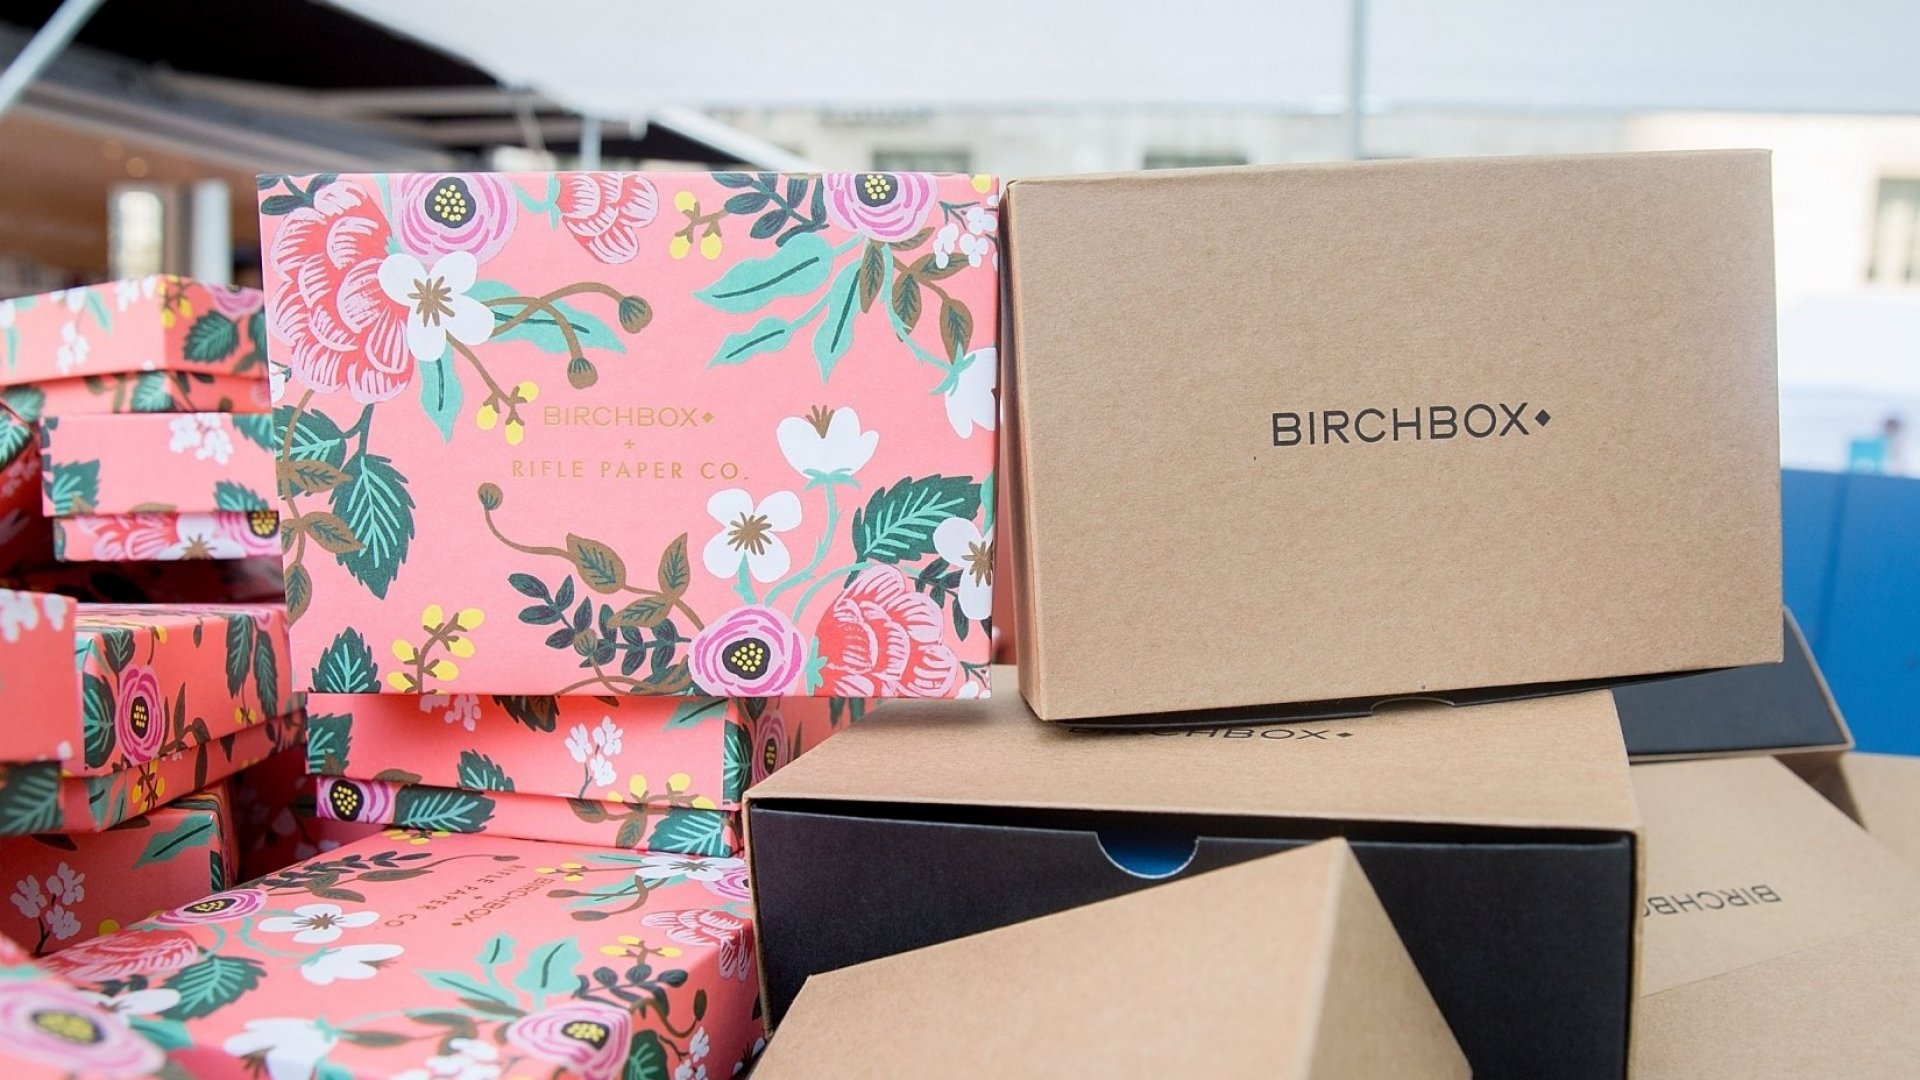 Birchbox Drops Men From Its Labeling. Why It Won't Be the Last